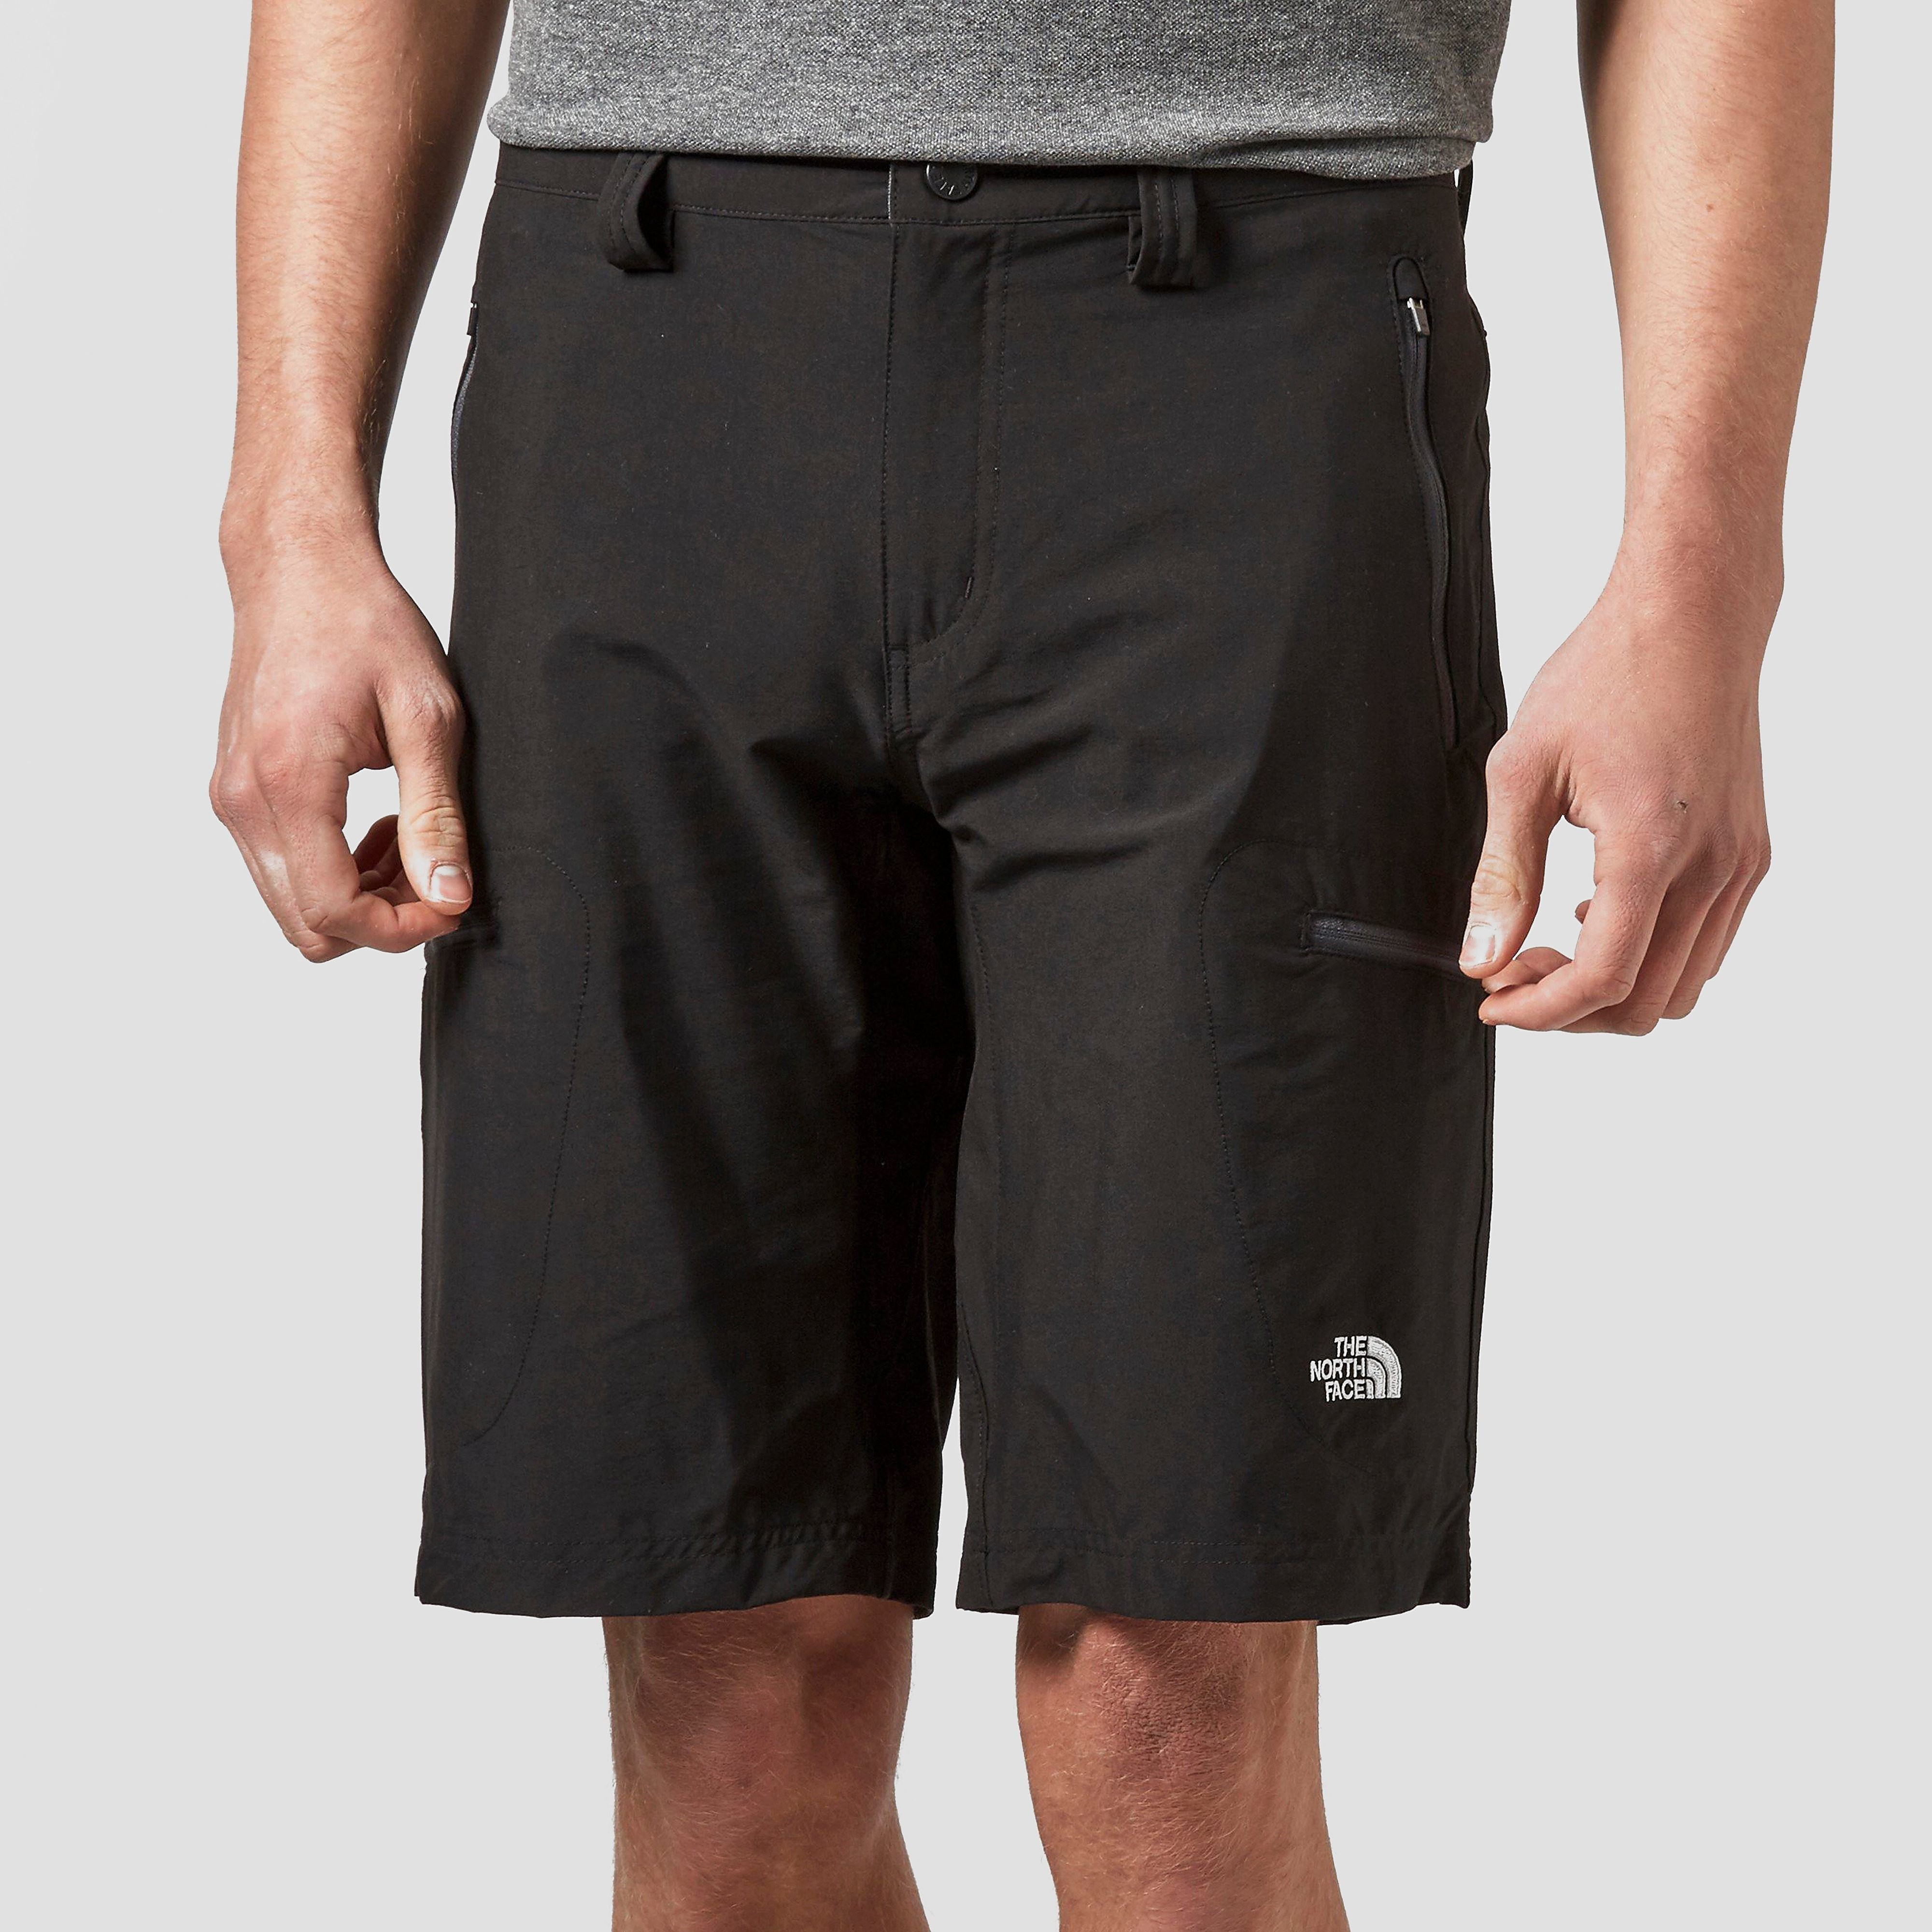 The North Face Exploration Men's Shorts